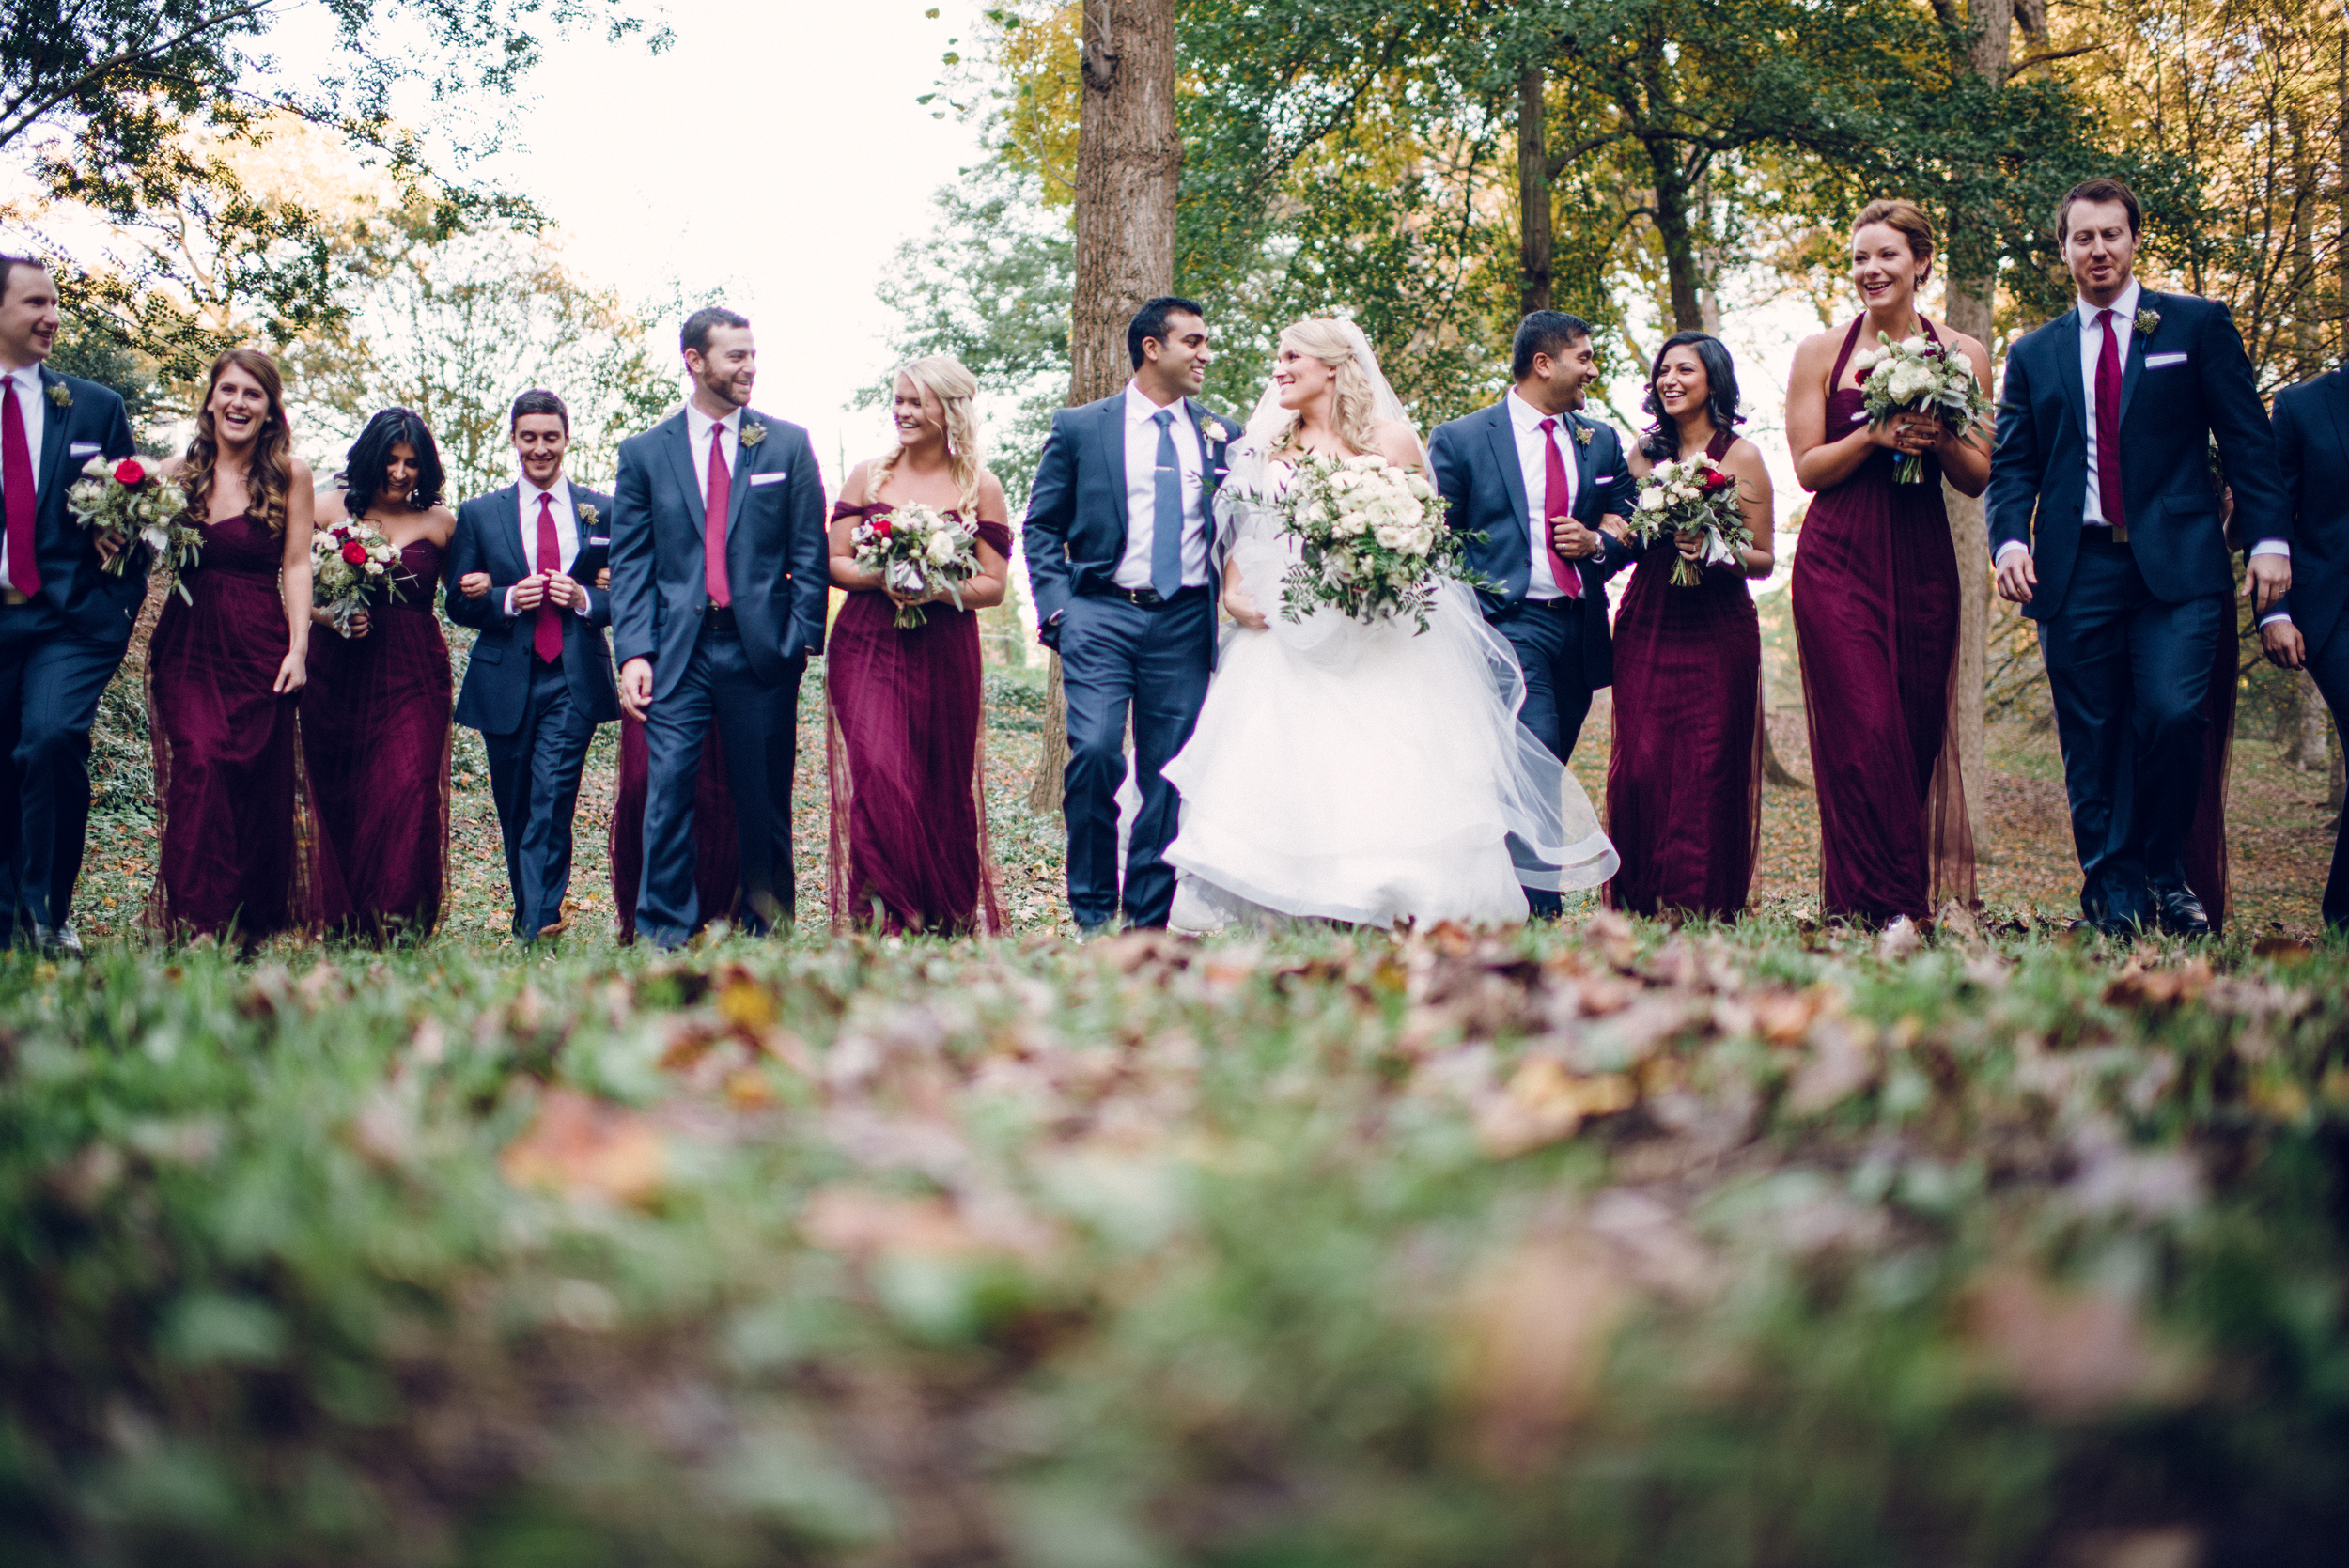 atlanta-wedding-outdoor-bridal-party-photo